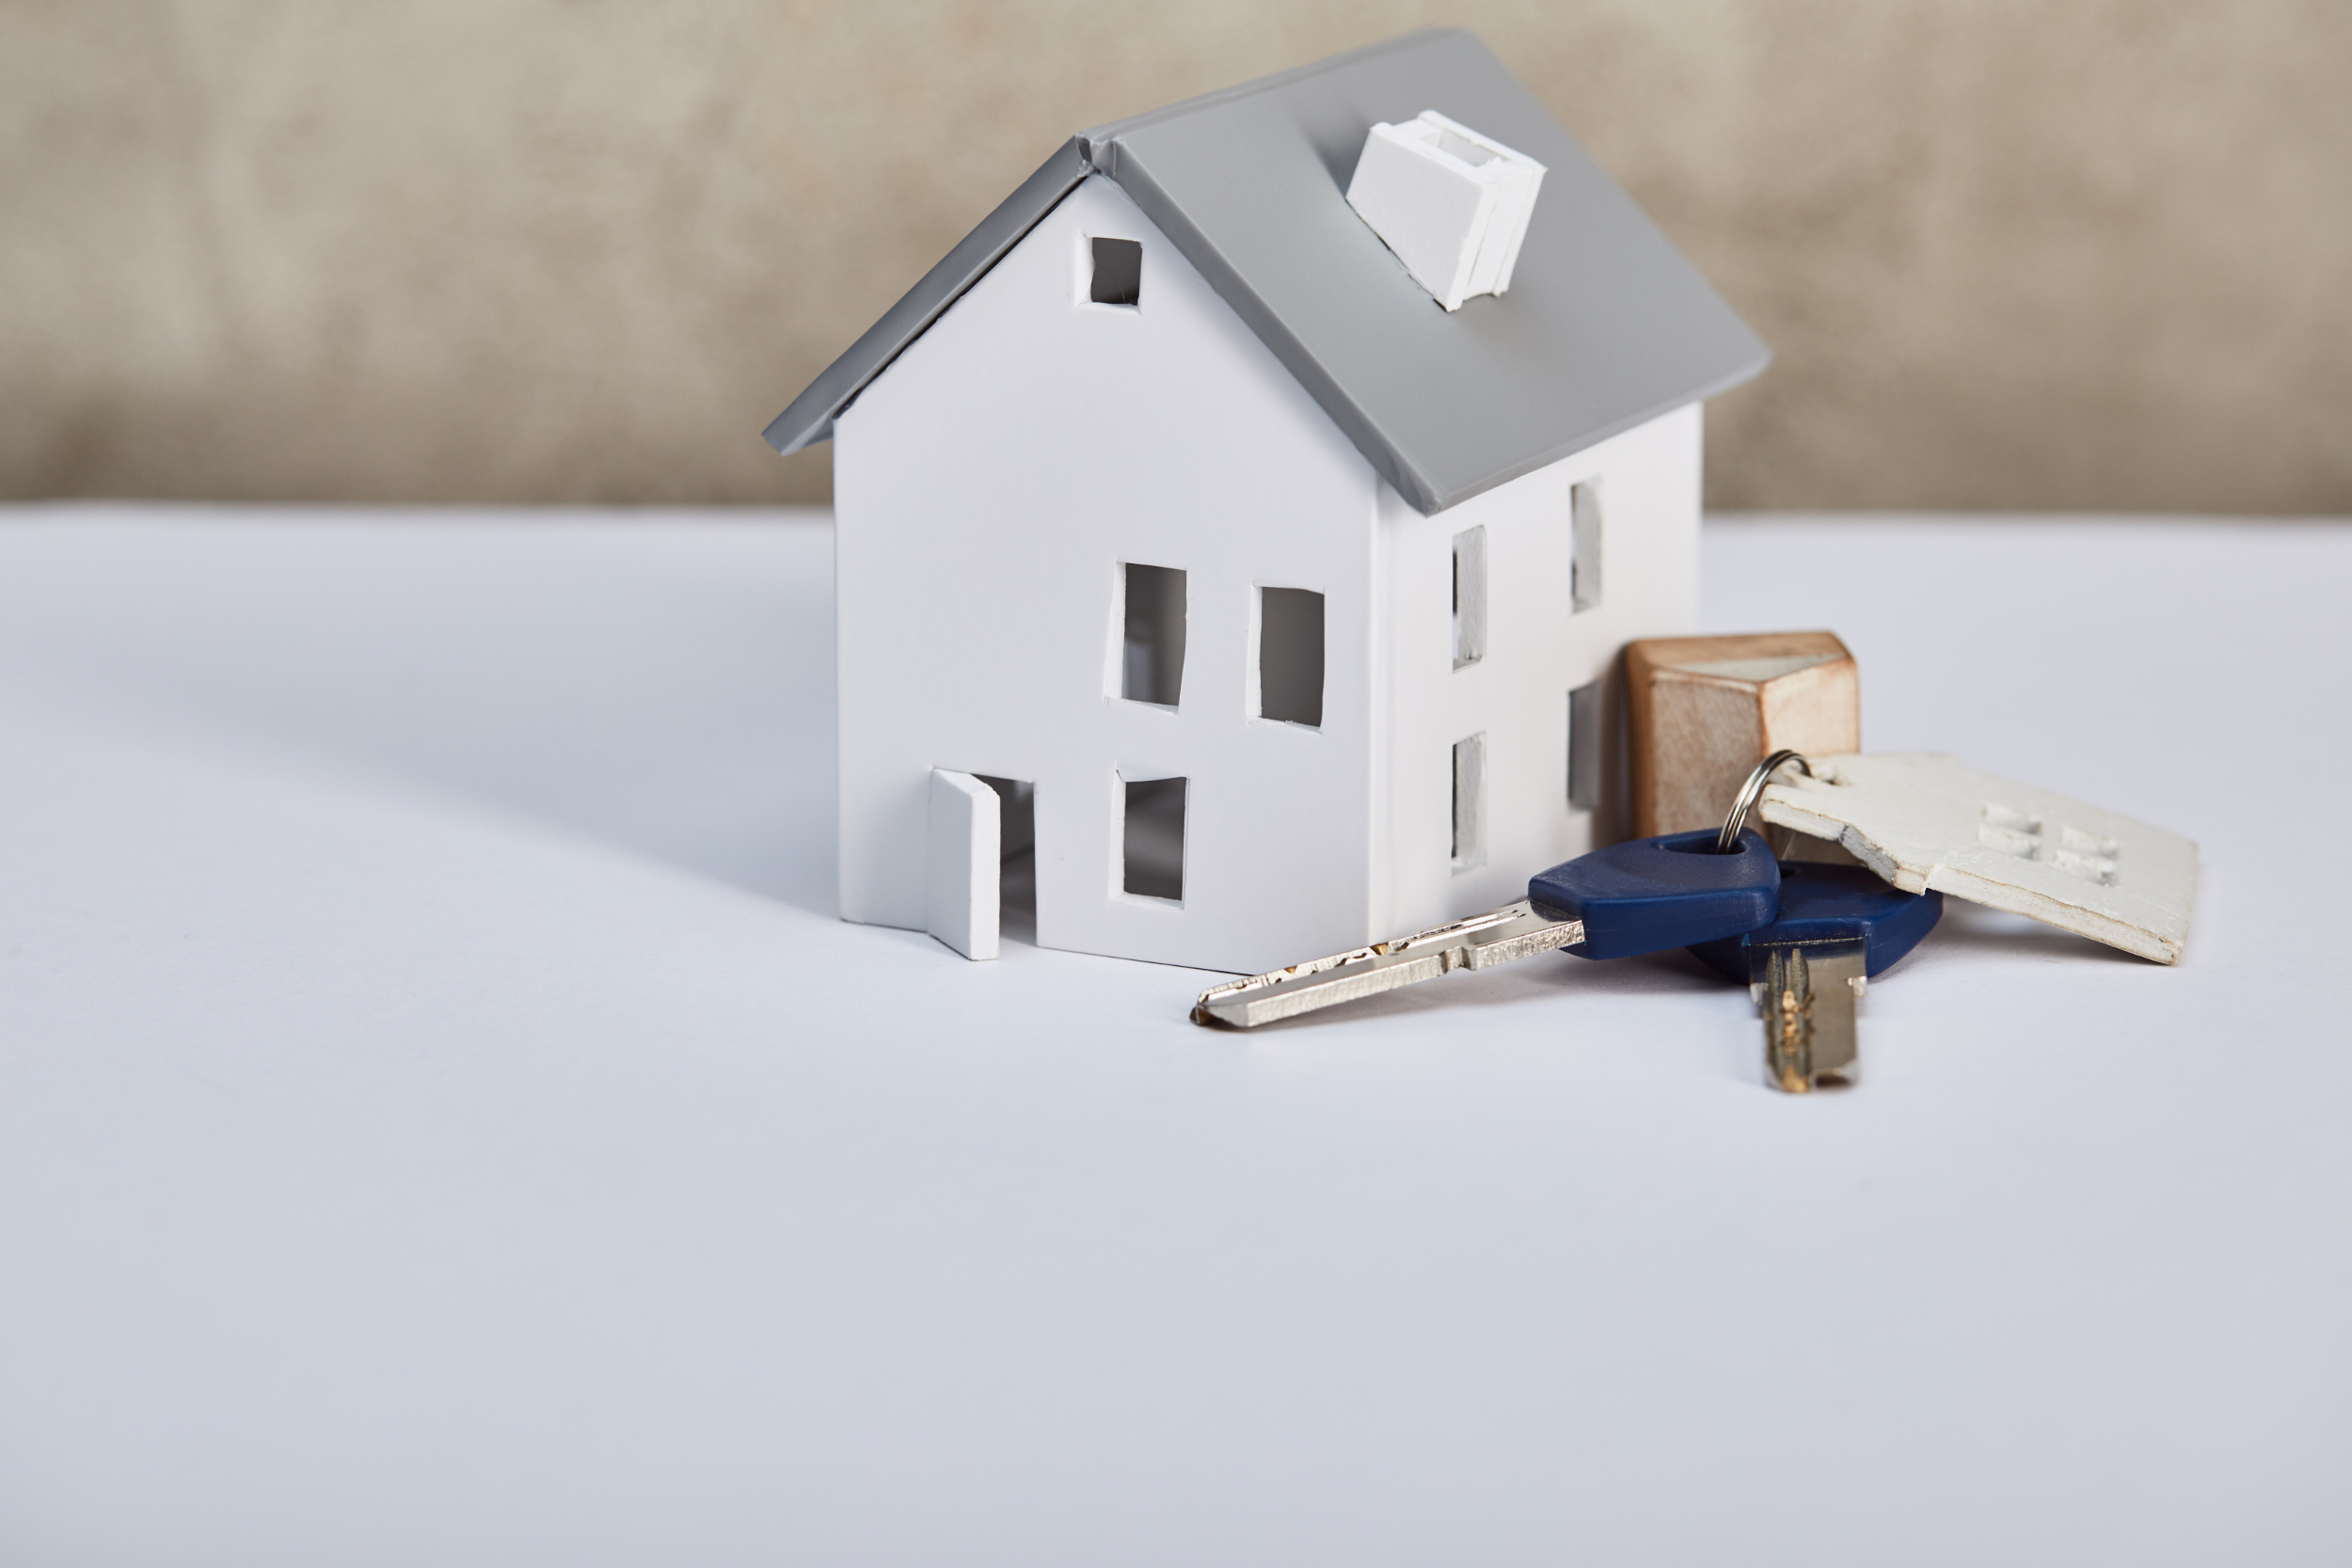 Model home with house keys